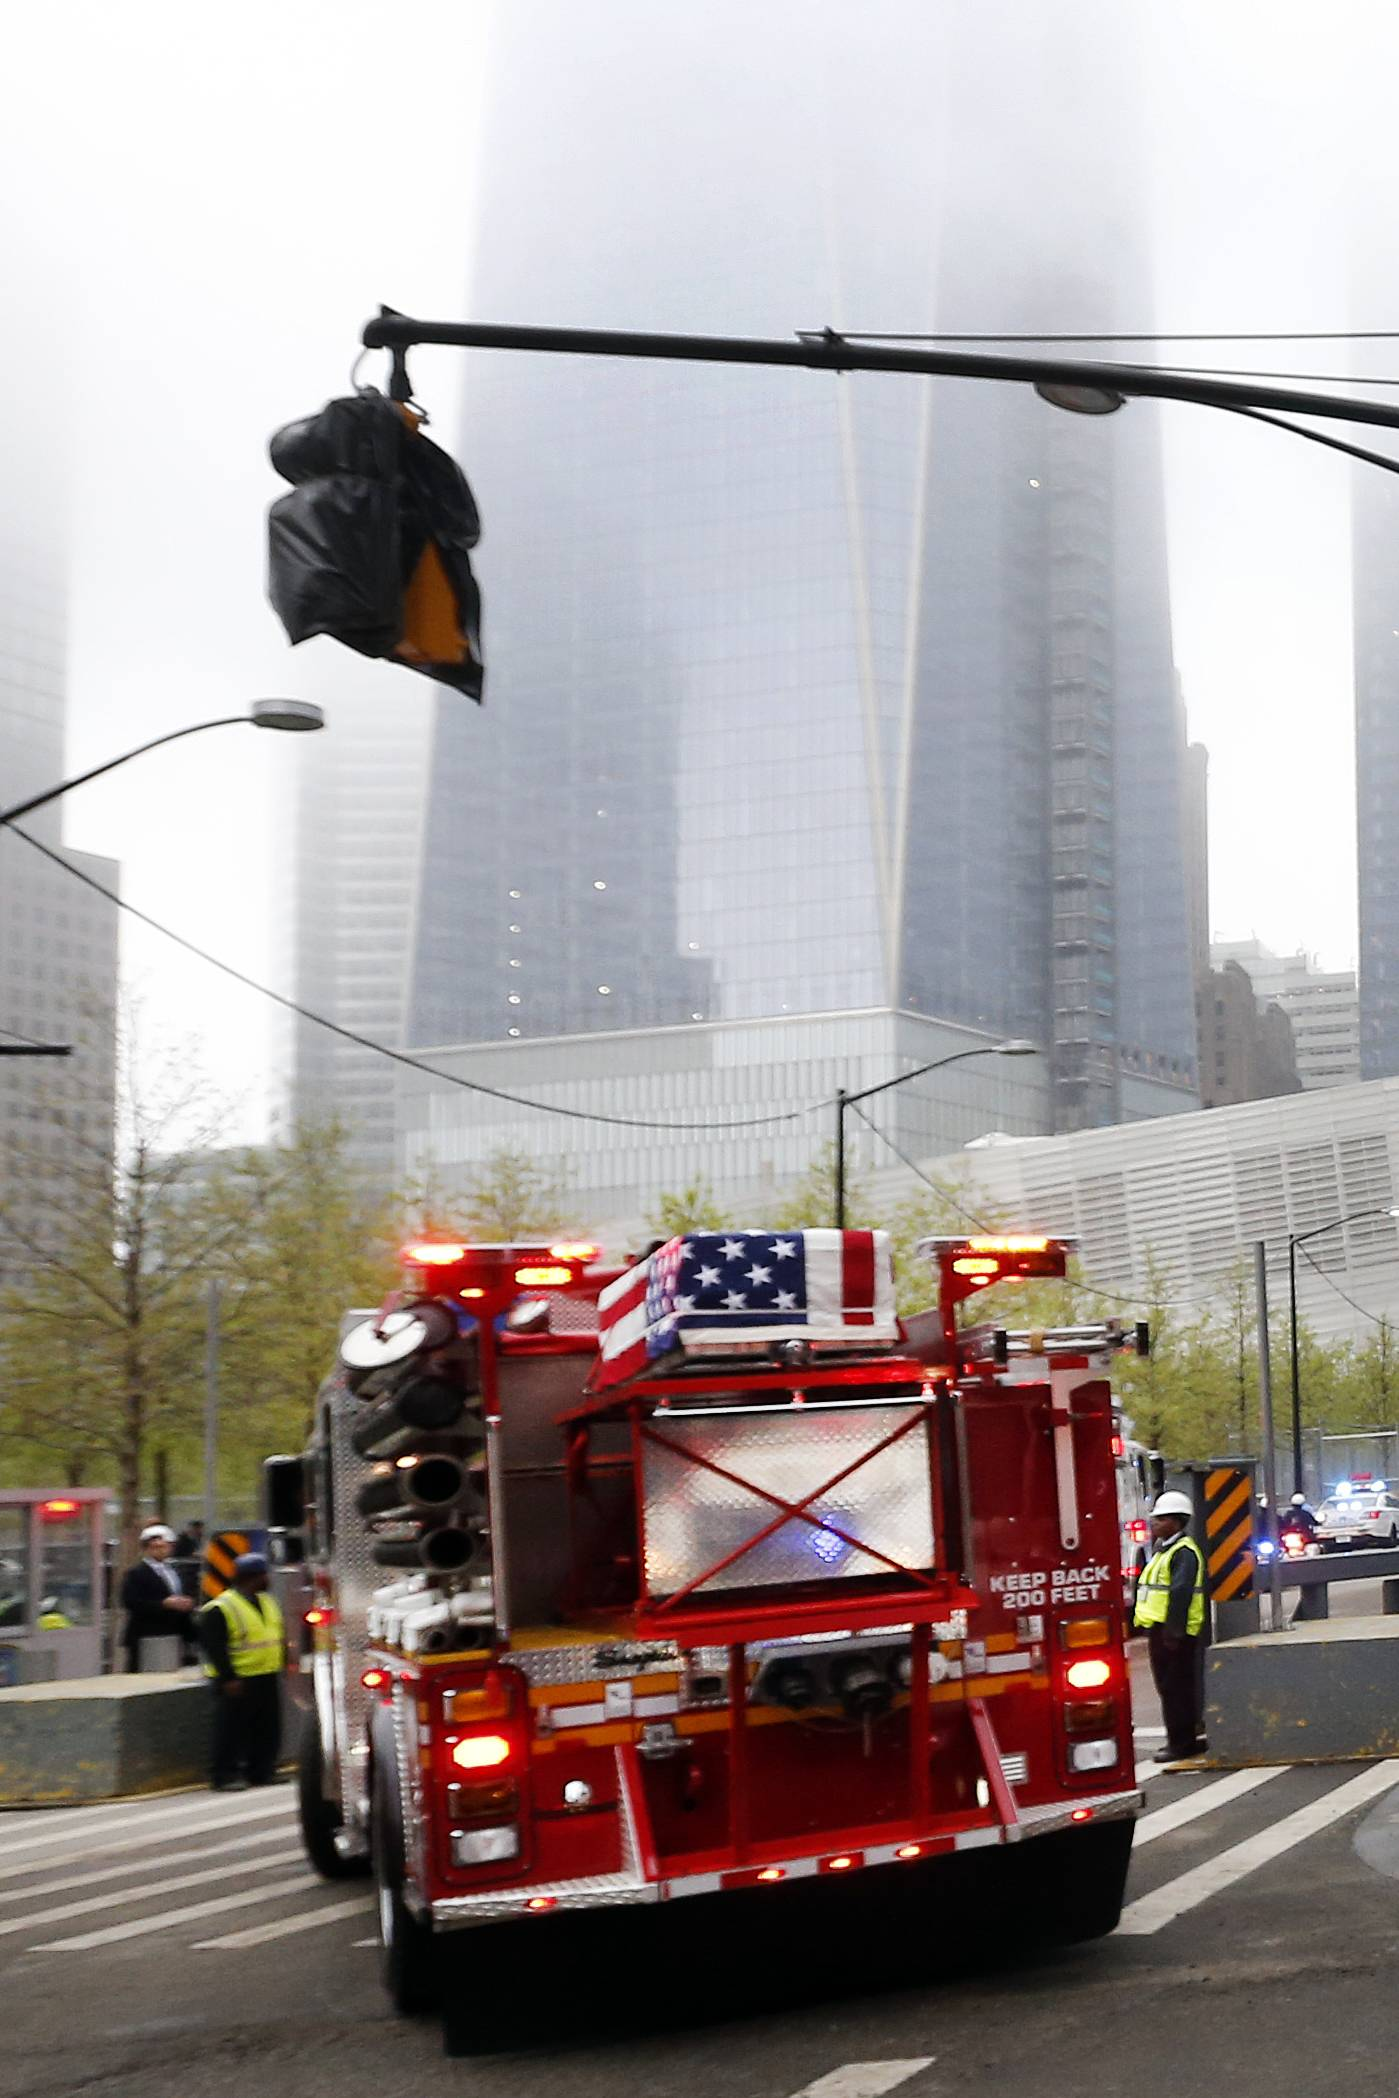 A flag-draped casket can seen atop a fire truck as the motorcade arrives for the ceremonial transfer of unidentified remains of those killed at the World Trade Center from the Office of the Chief Medical Examiner to the World Trade Center site, Saturday, May 10, in New York. The remains will be transferred to an underground repository in the same building as the National September 11 Memorial Museum.